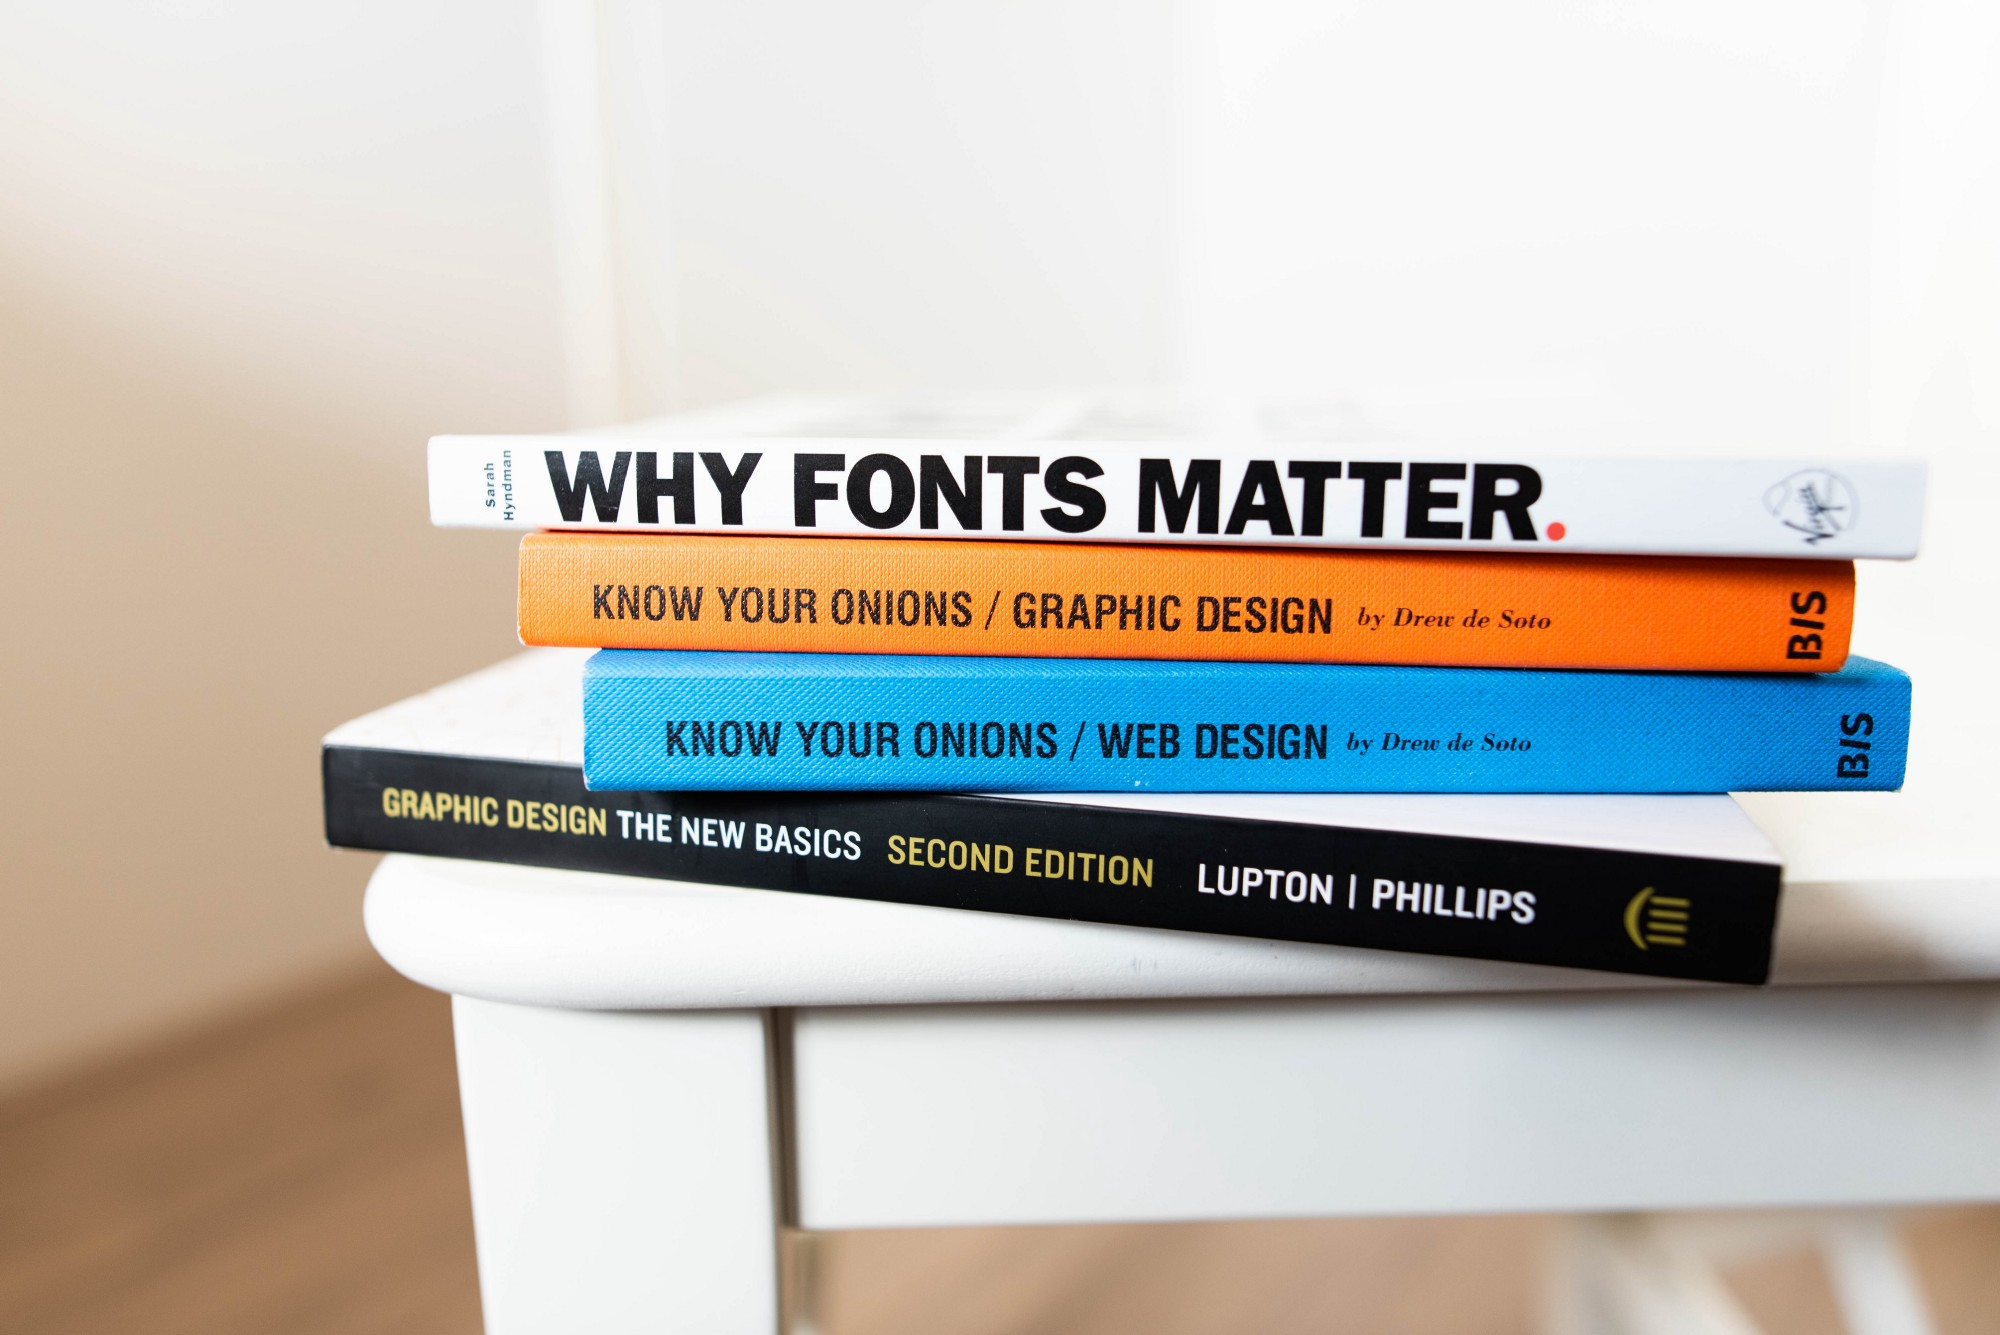 Awesome typography tips on how to elevate your designs